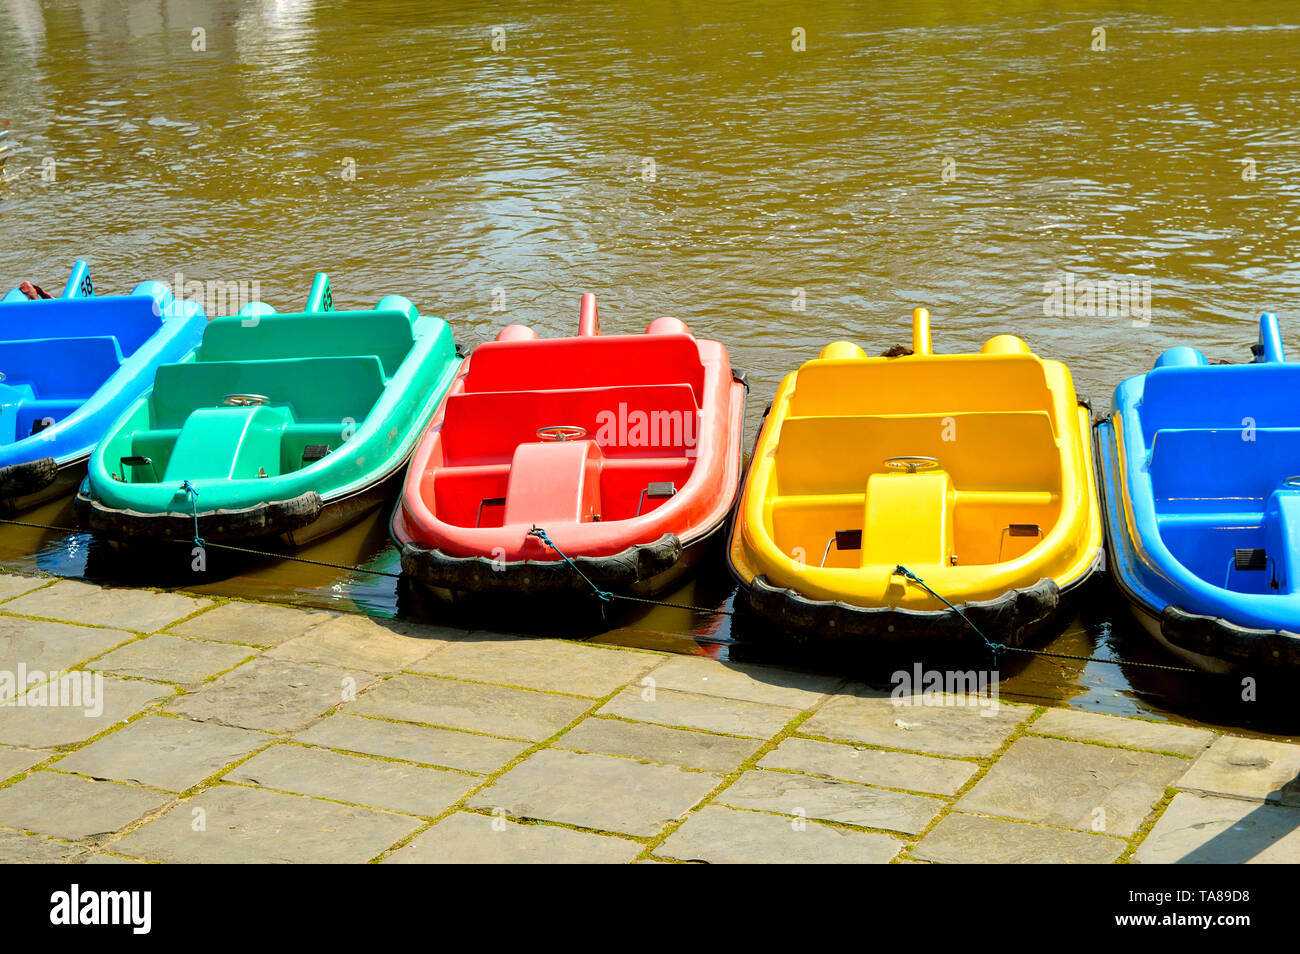 Pedal boats on the River Dee in Chester City centre - Stock Image